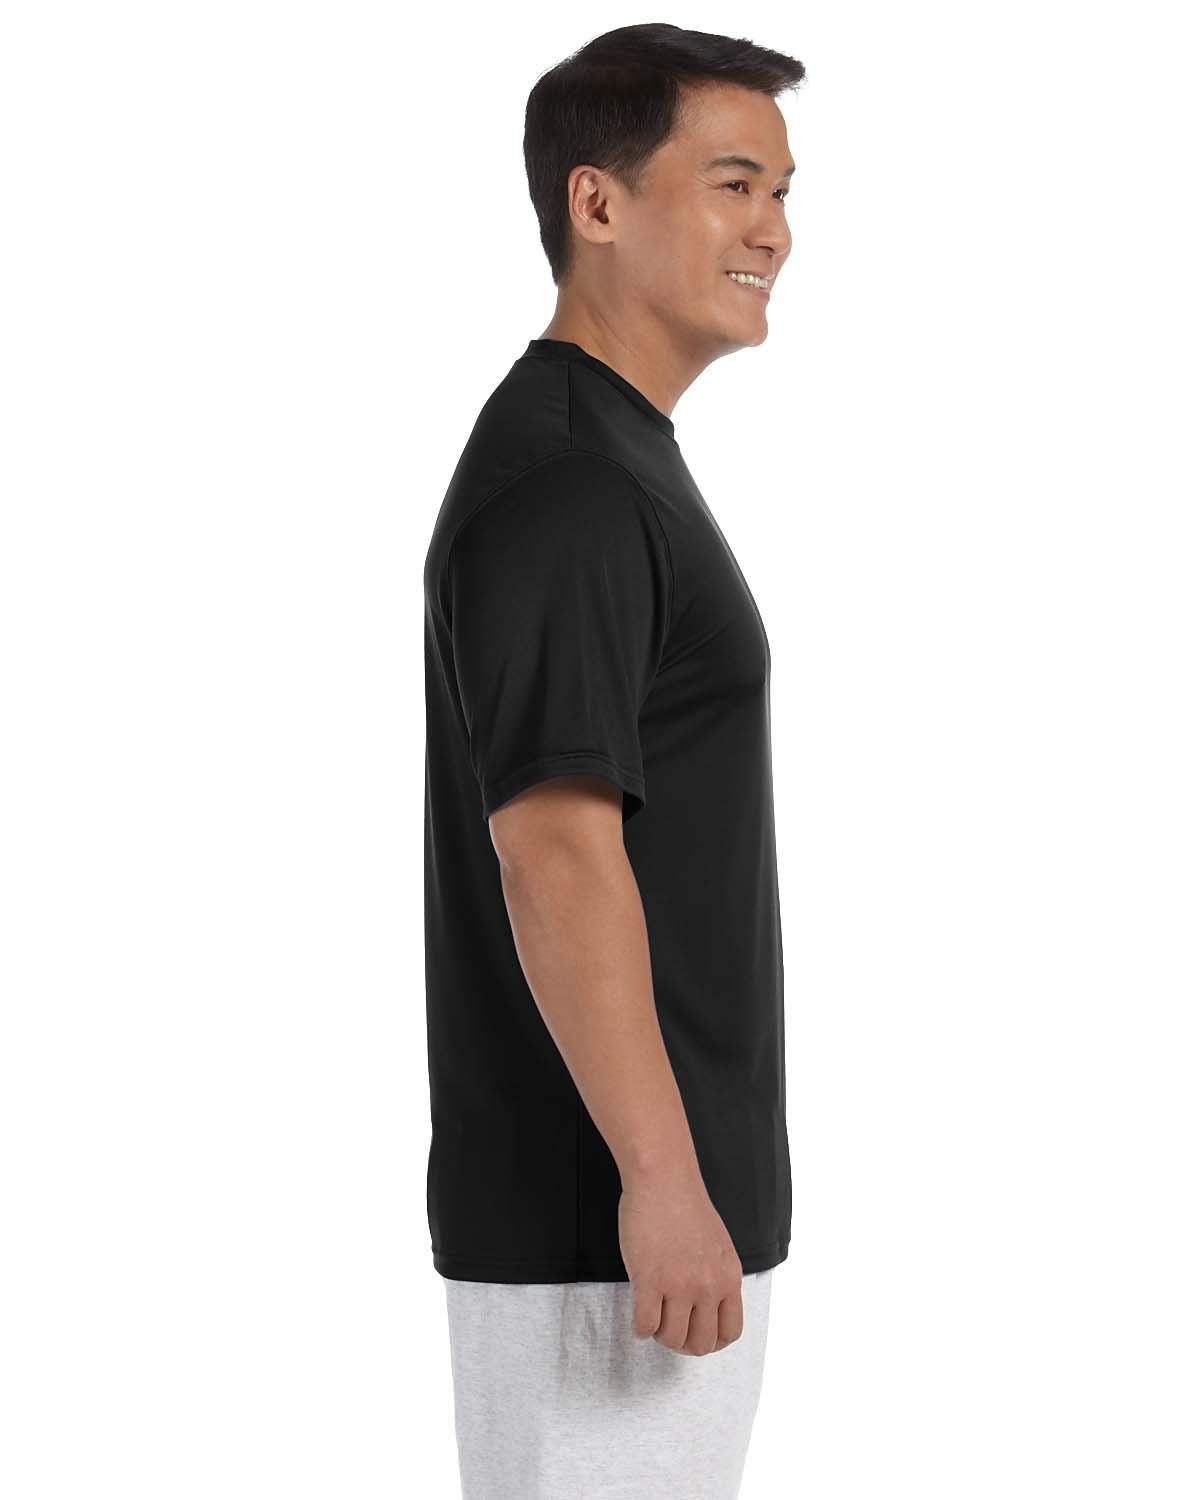 9f62c1638 Champion CW22 Adult 4.1 oz. Double Dry Interlock T-Shirt. Clearance CW22_52  View larger. Previous. CW22_51 ...